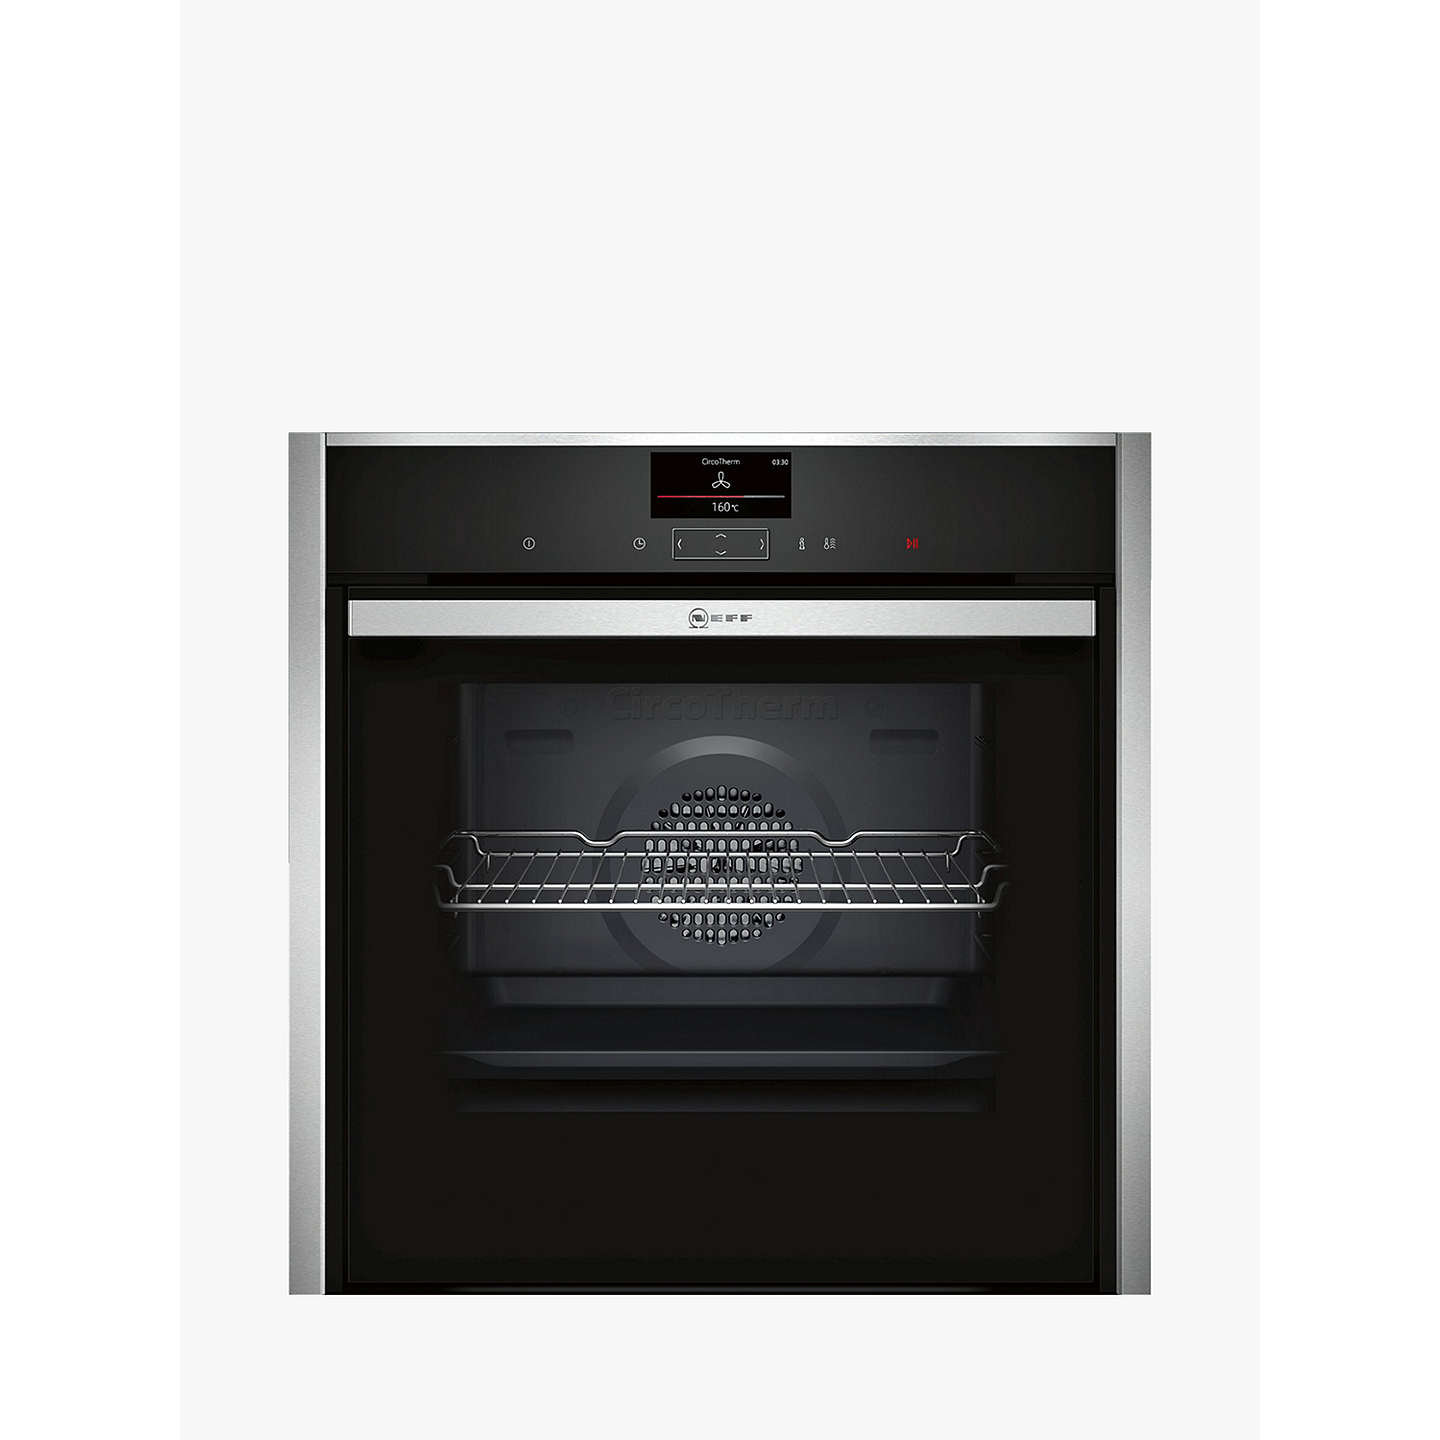 Neff B47 Cs34 N0 B Slide And Hide Single Electric Oven, Stainless Steel by Neff